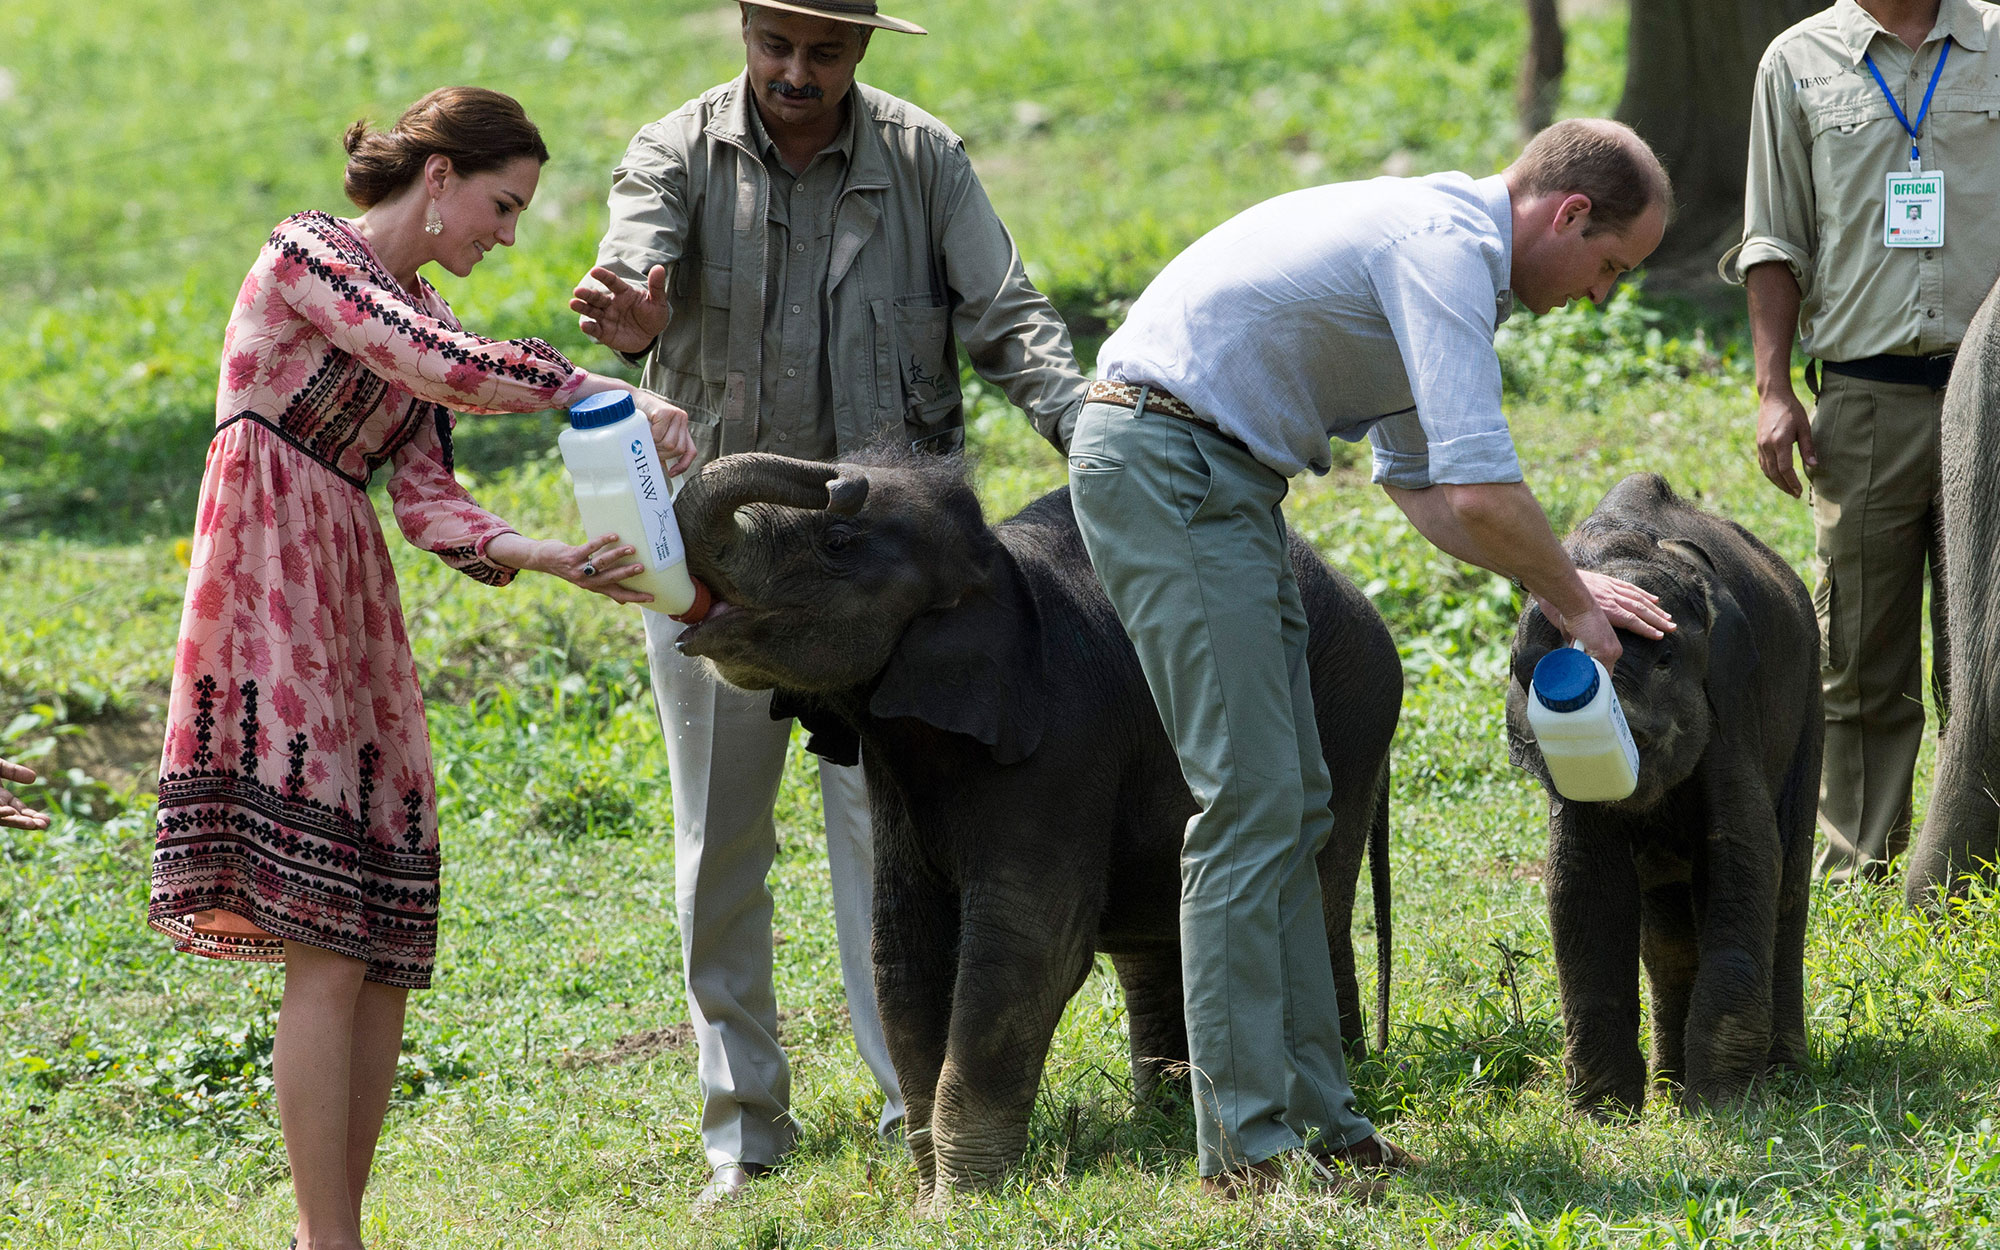 Prince William and Kate Middleton Embark on their Royal Tour of India: Feeding Baby Elephants